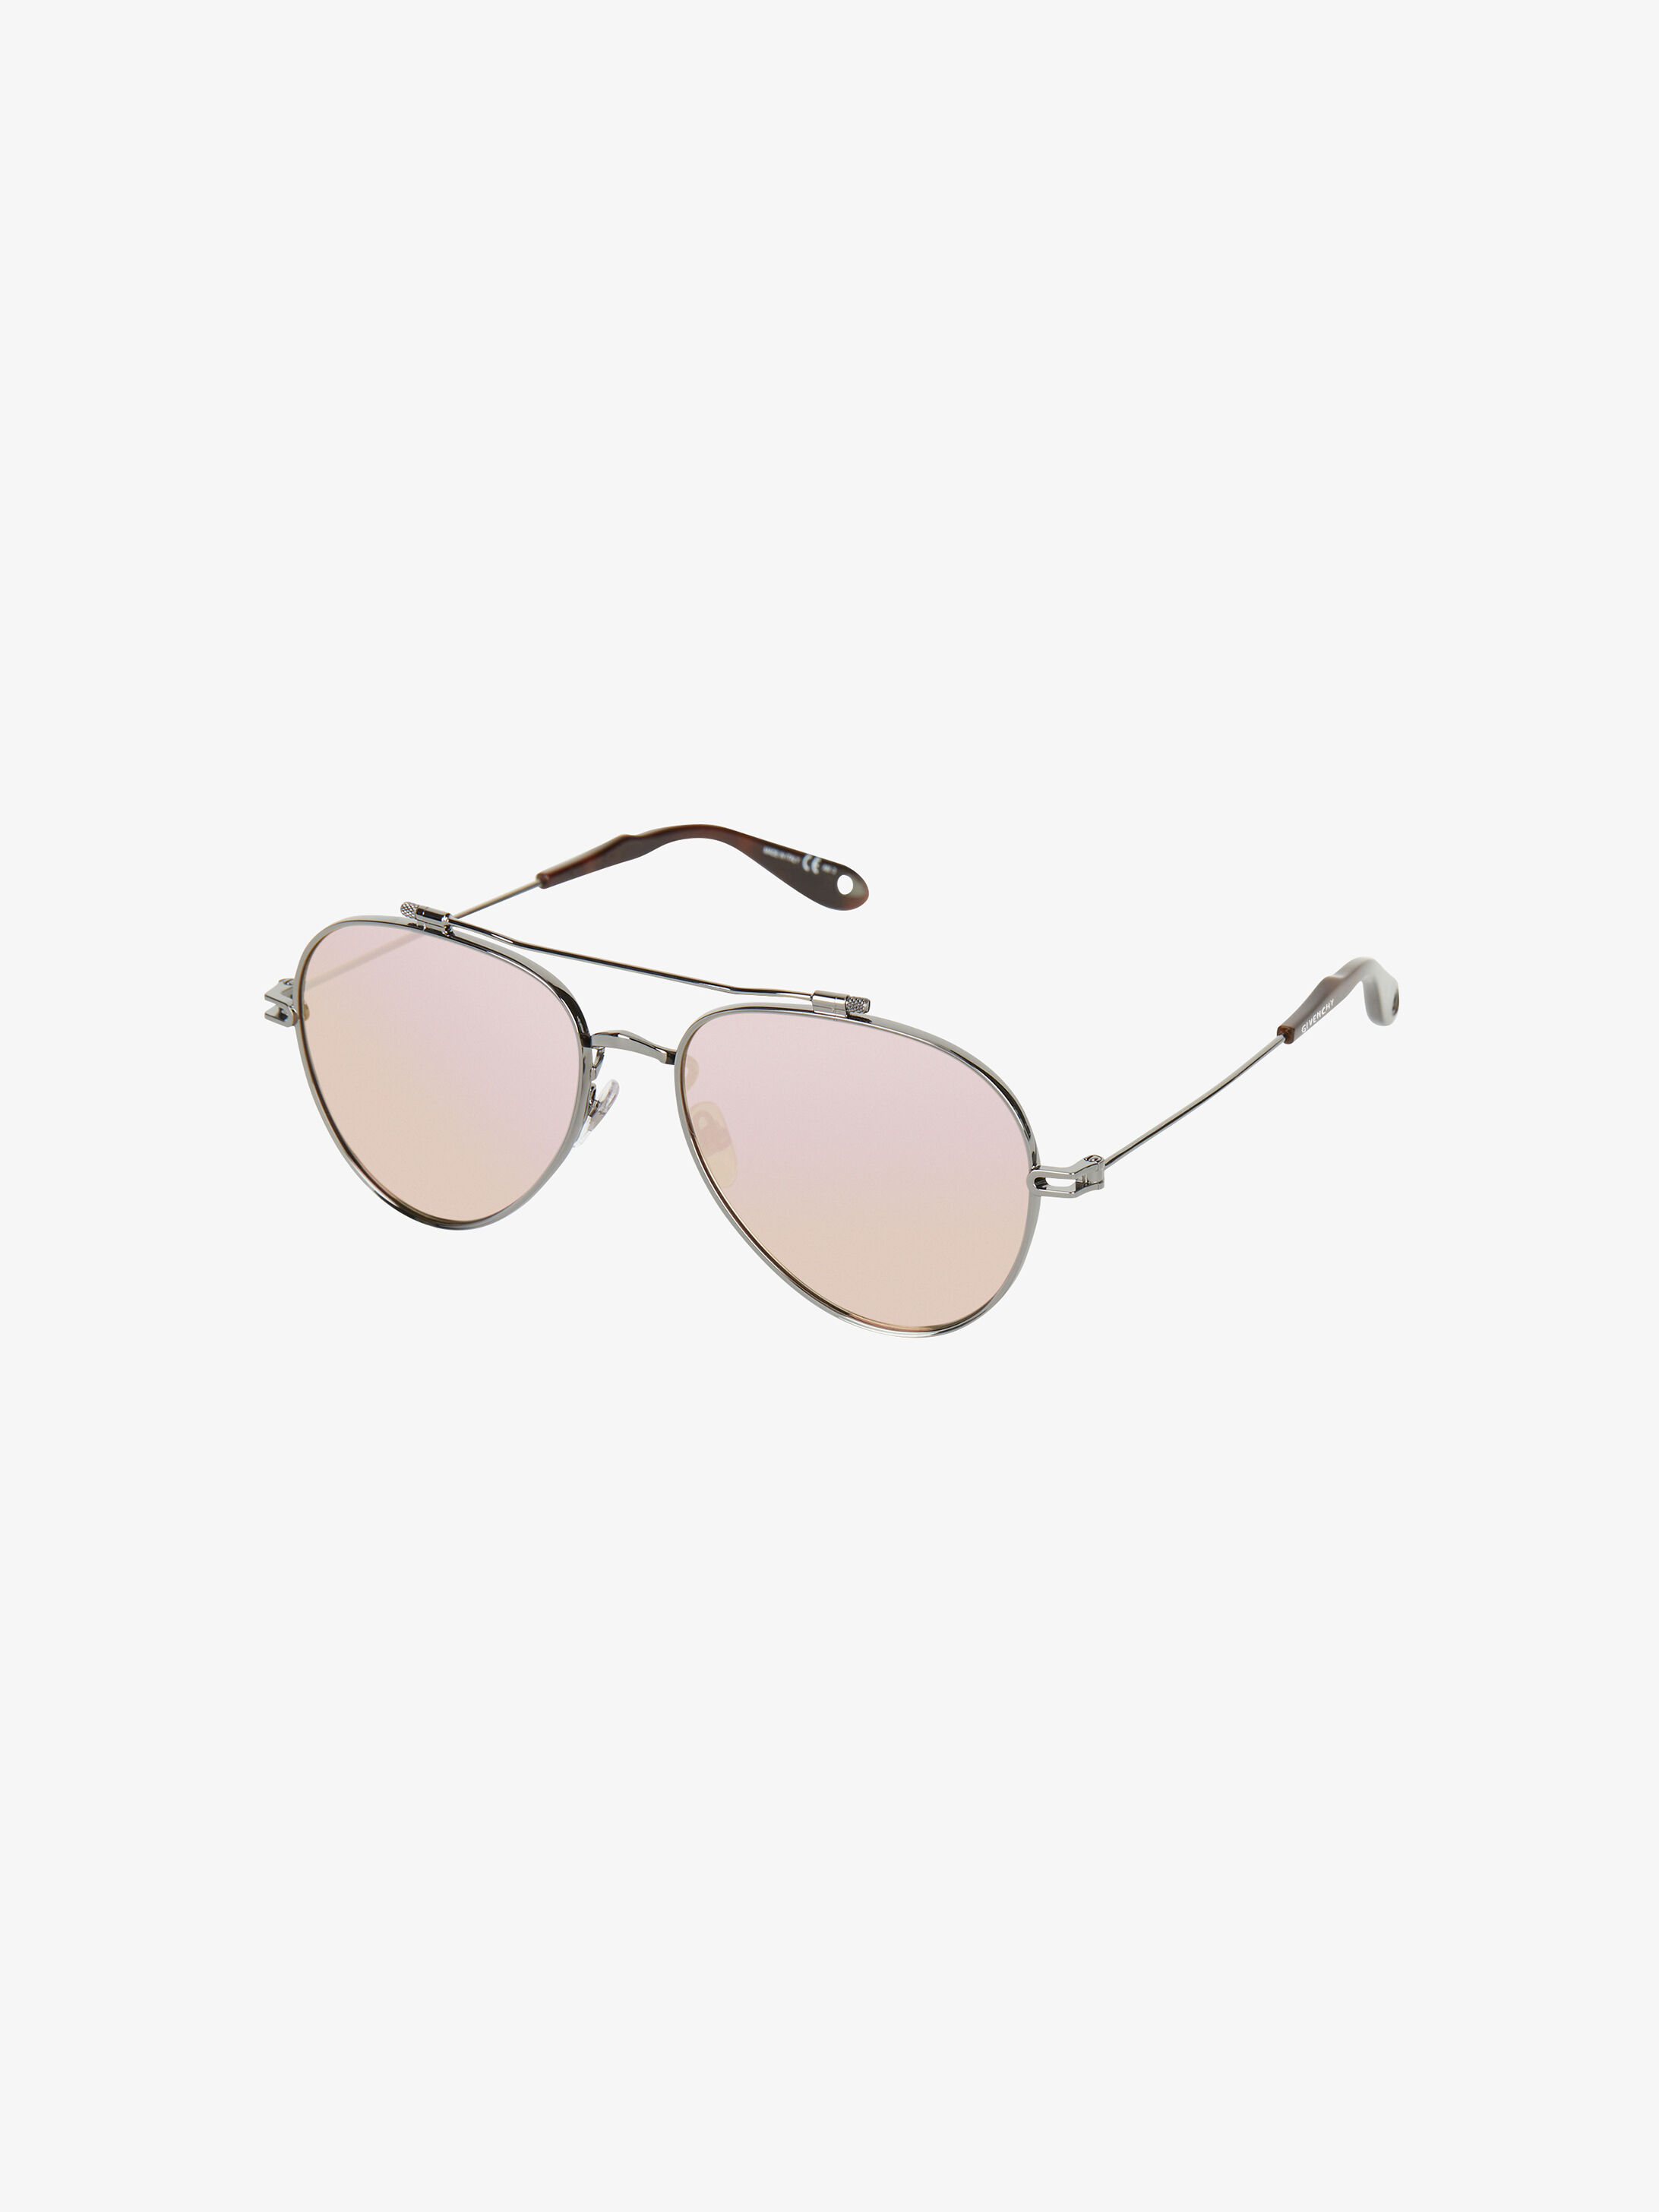 Women s Sunglasses collection by Givenchy.  178f686ccc31